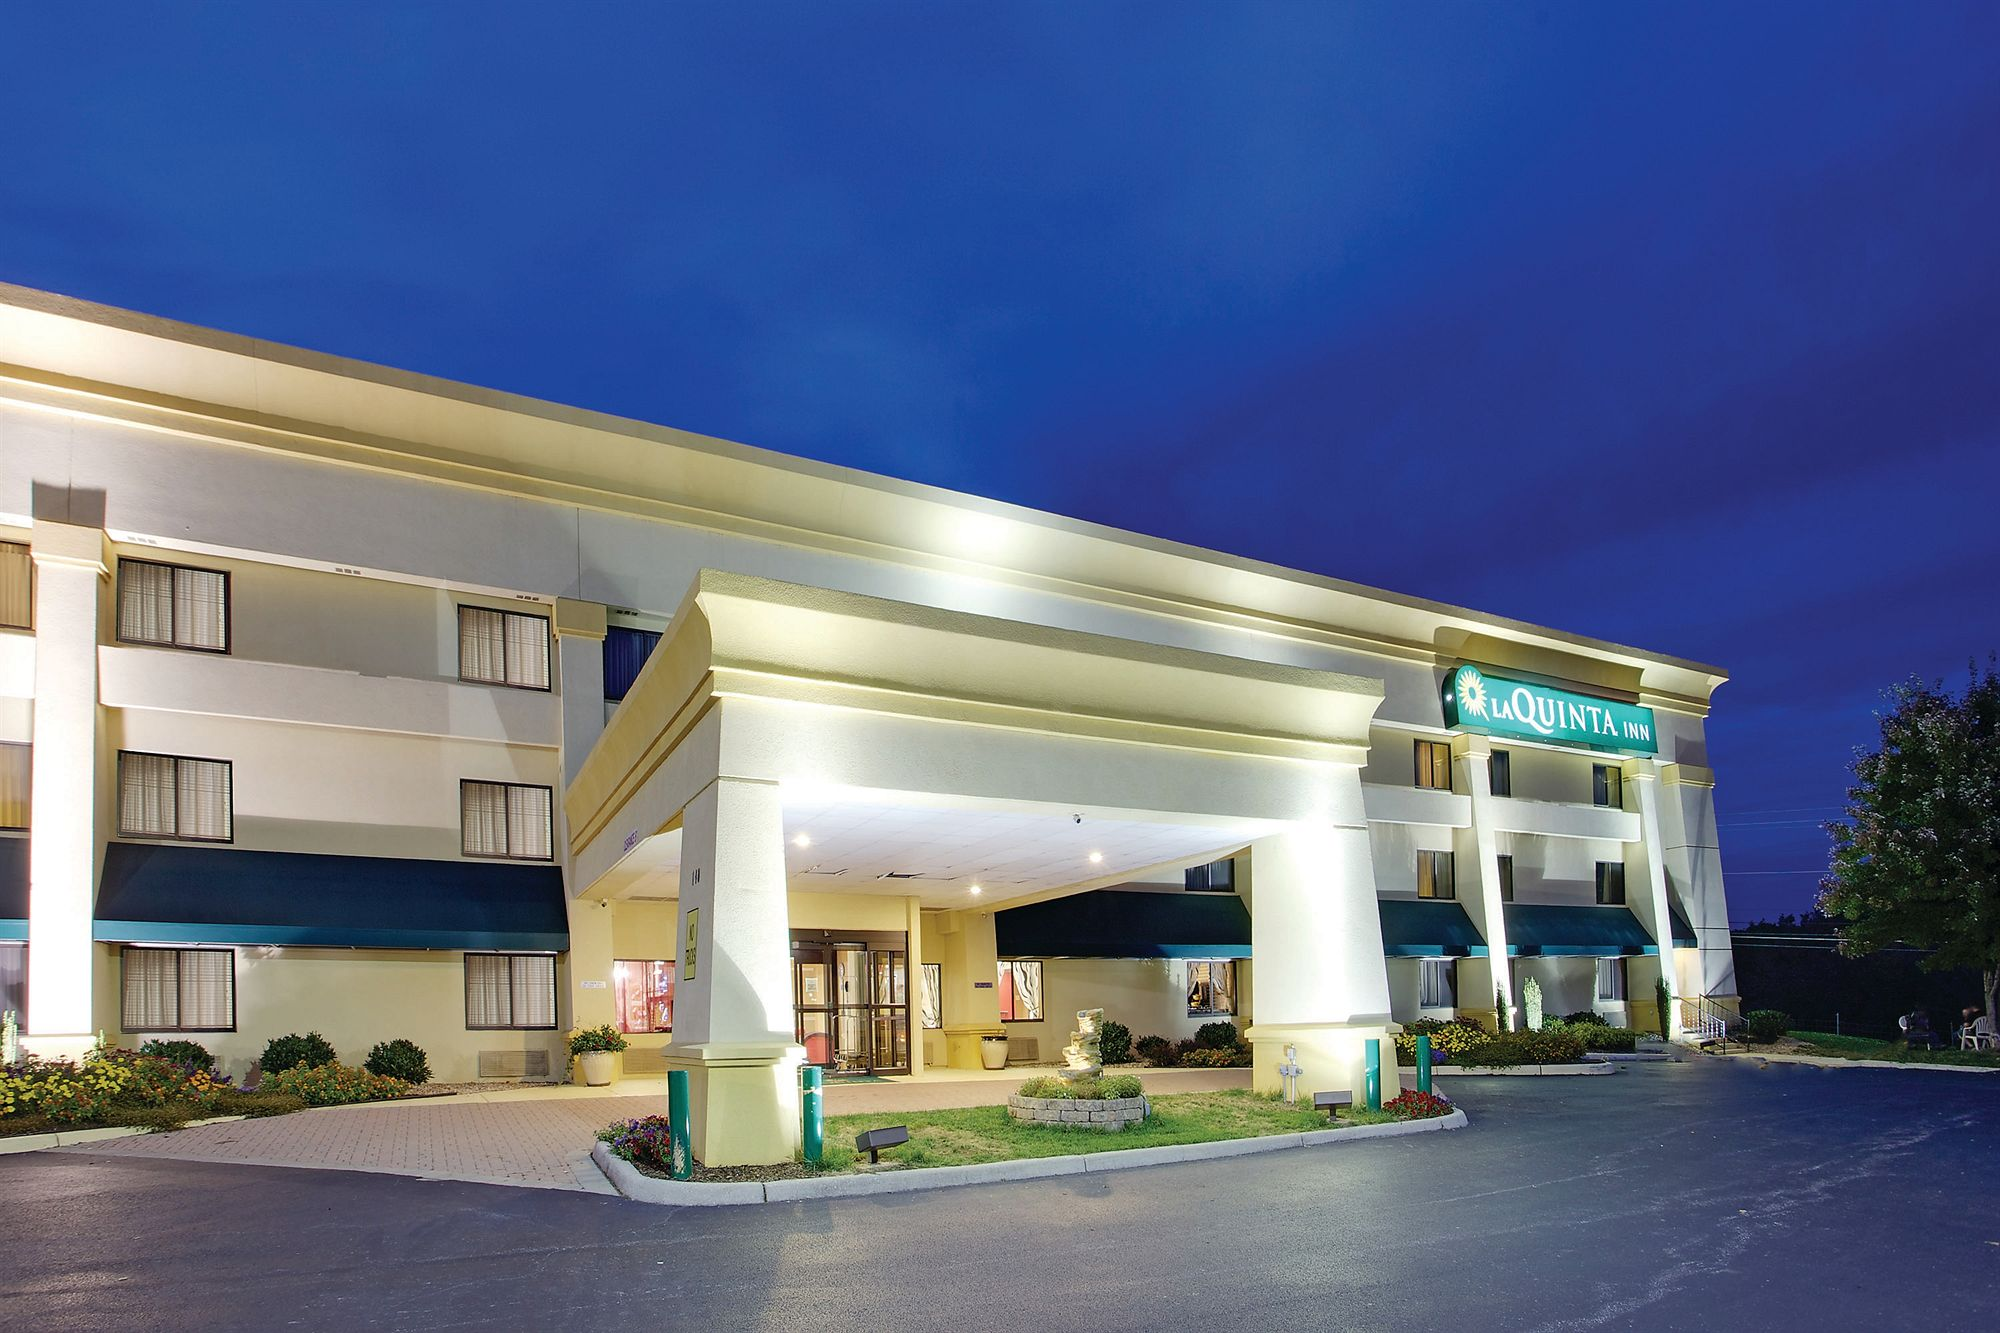 La Quinta Inn Roanoke-Salem